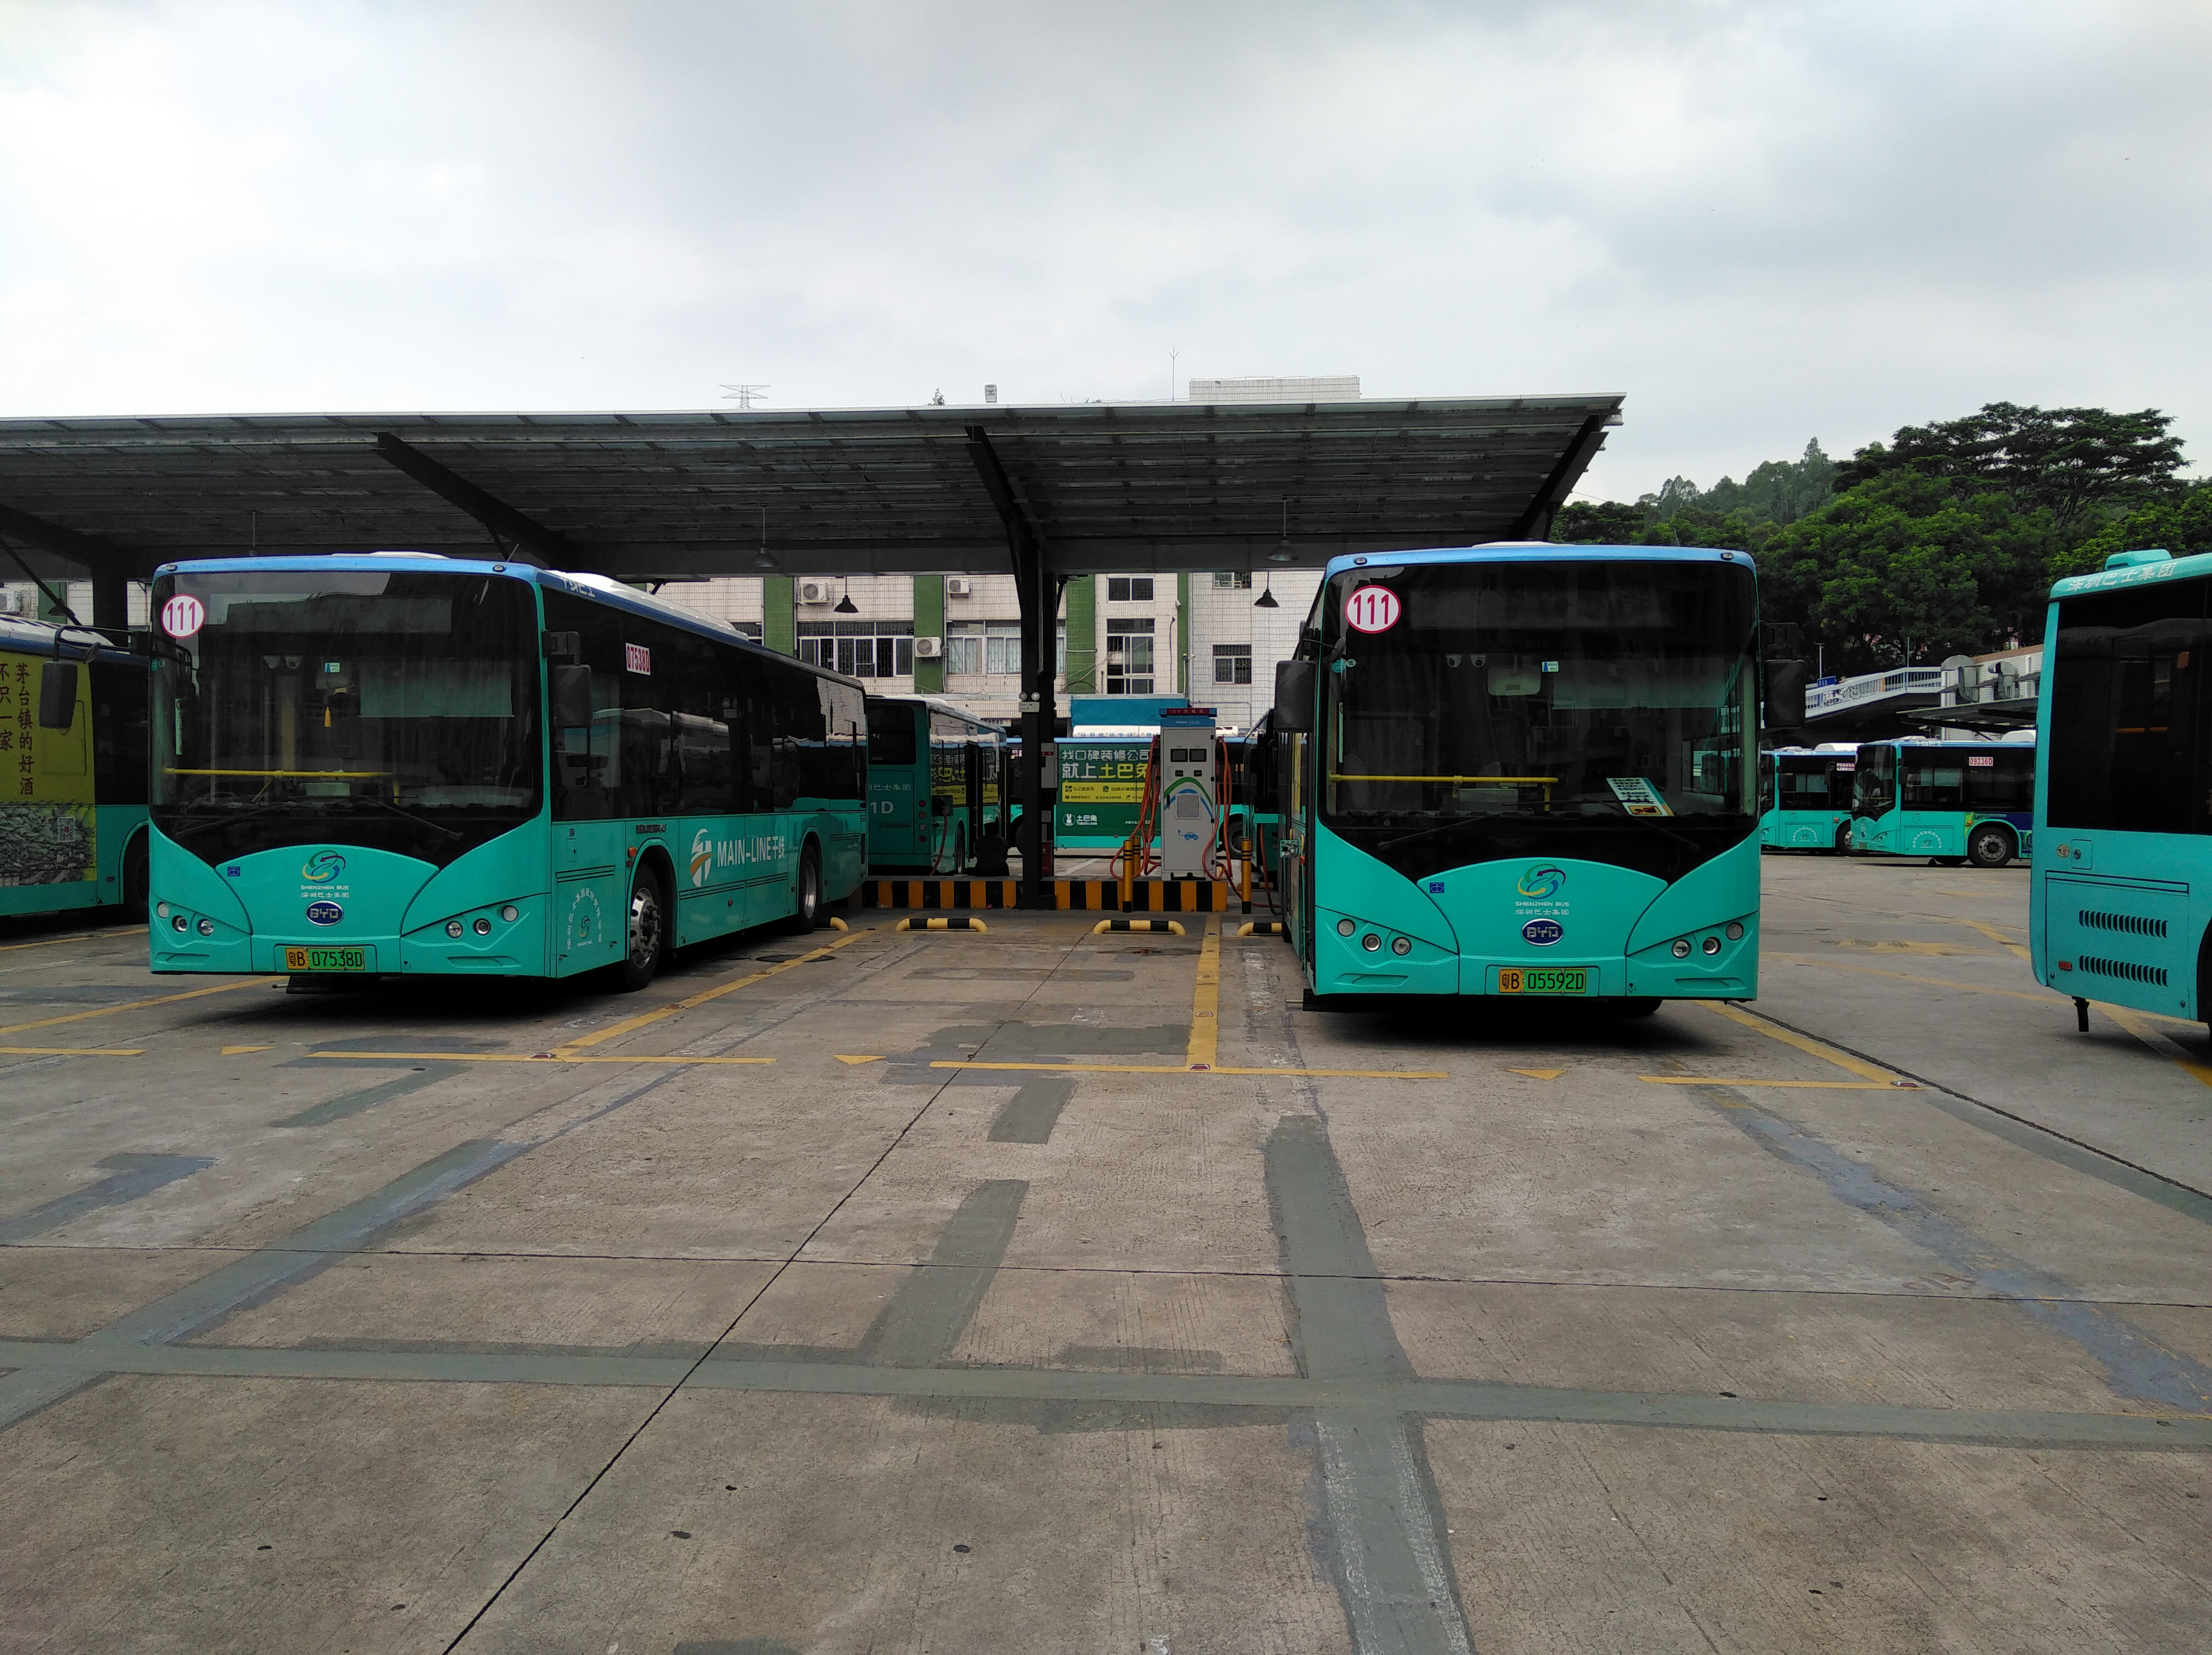 <p>Electric charging stations for buses in Shenzhen, China. Photo by Lu Lu/WRI China</p>